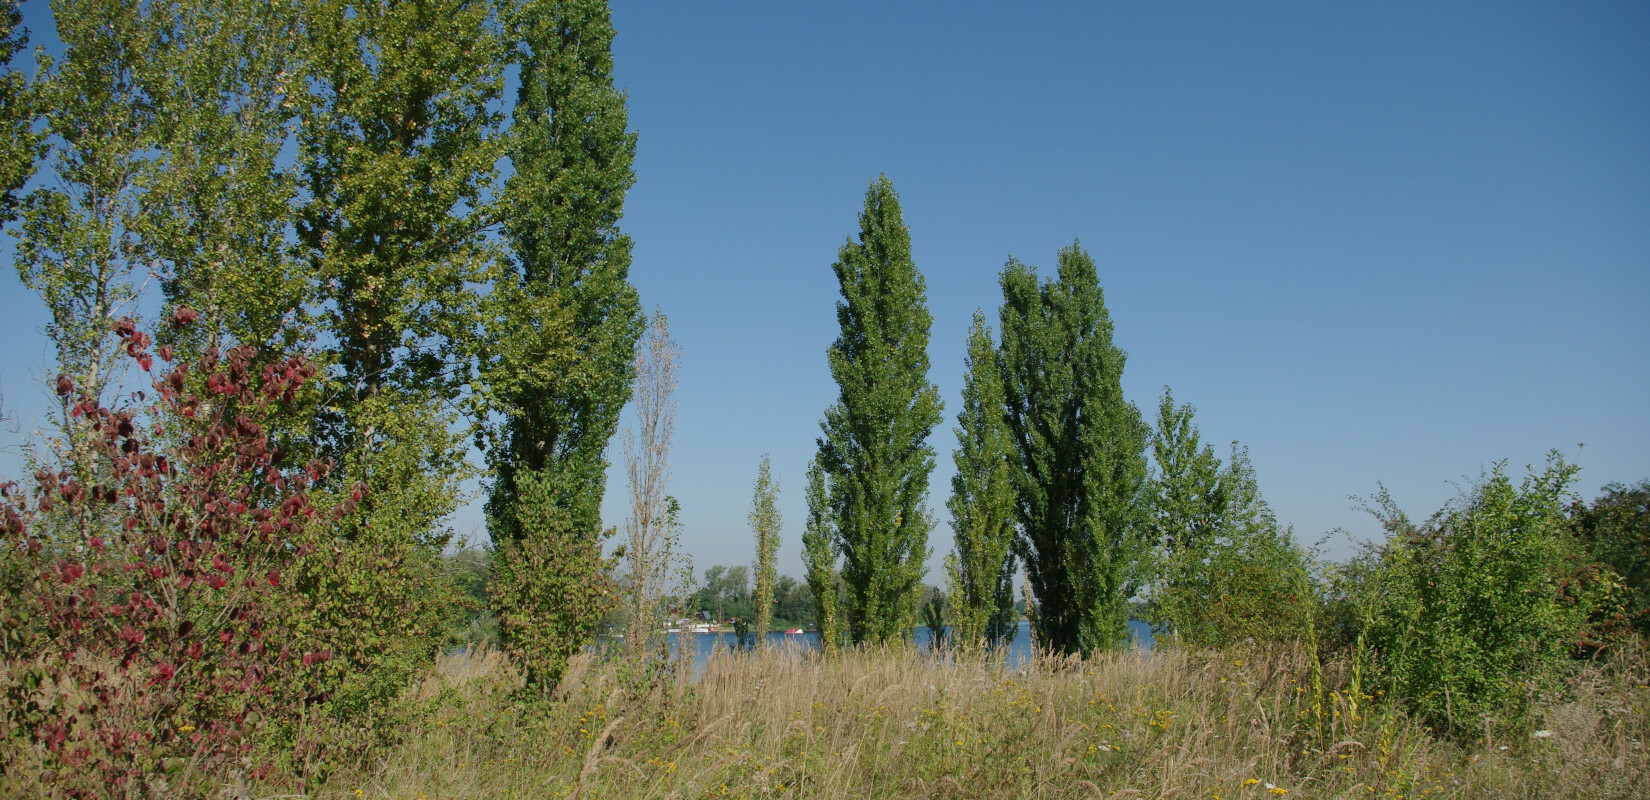 Poplar trees along the lake 'Hufeisensee' in Halle Kanena